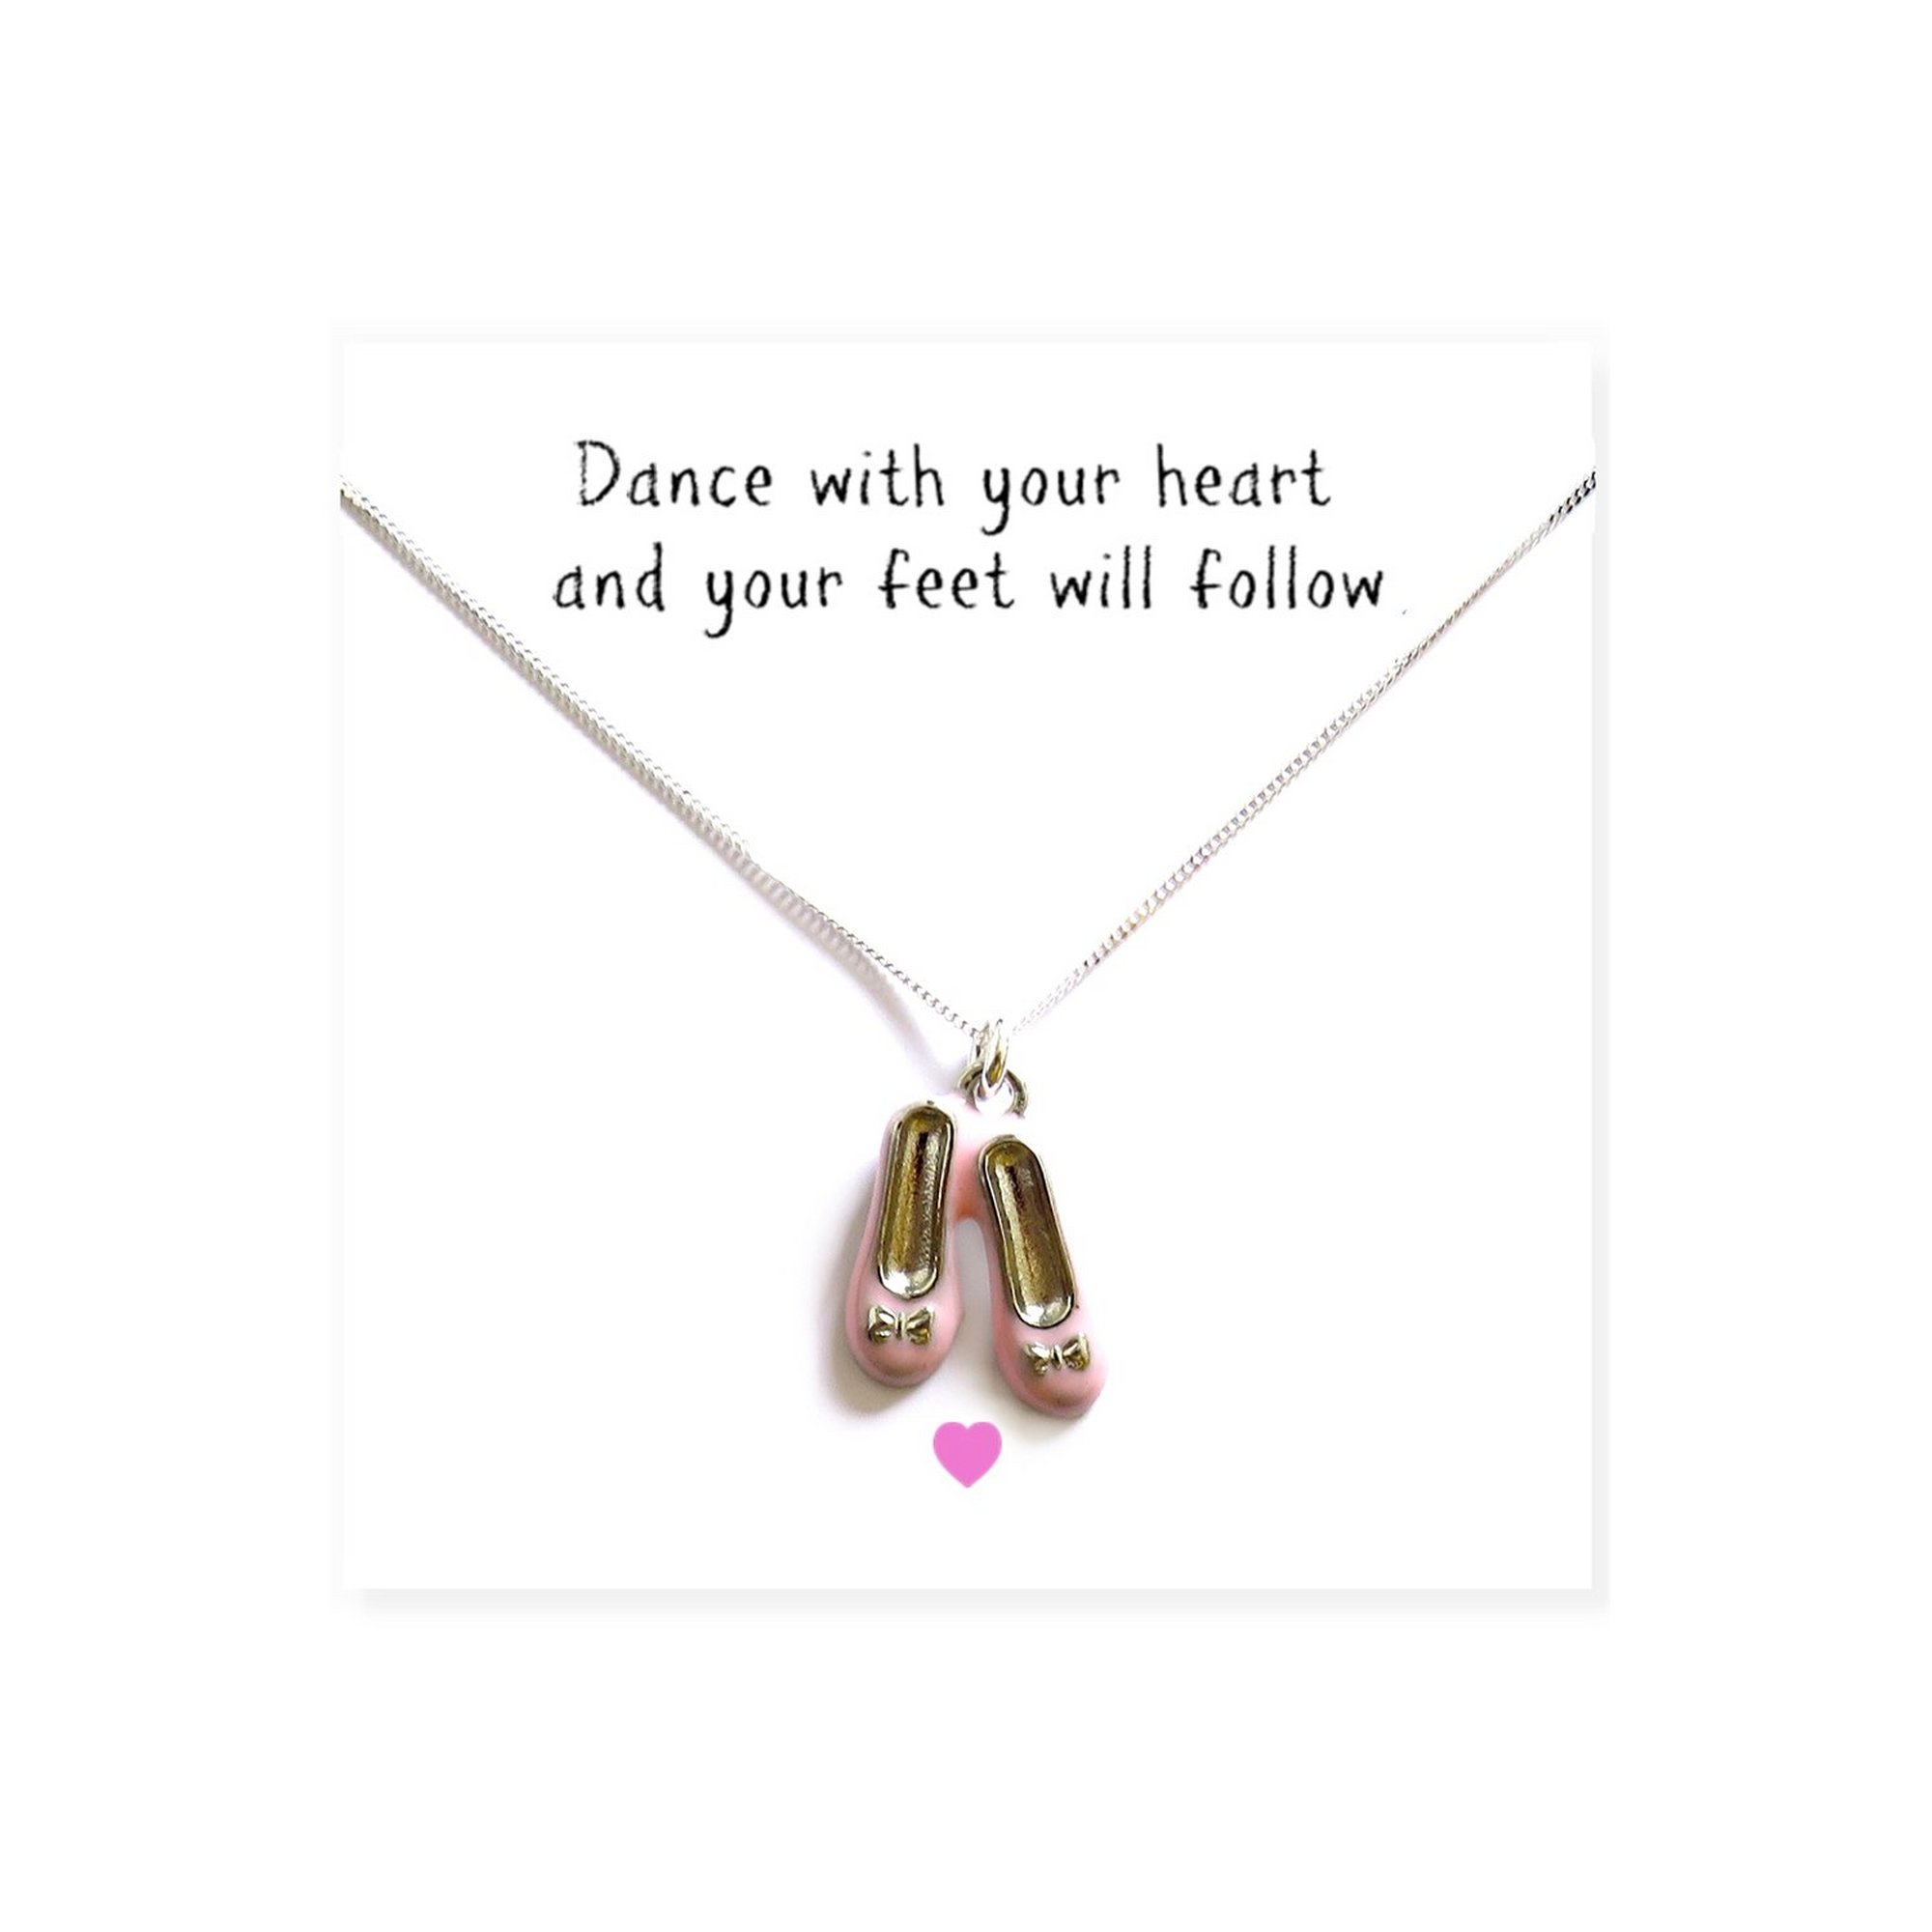 Image of Ballet Shoes Necklace and Message Card